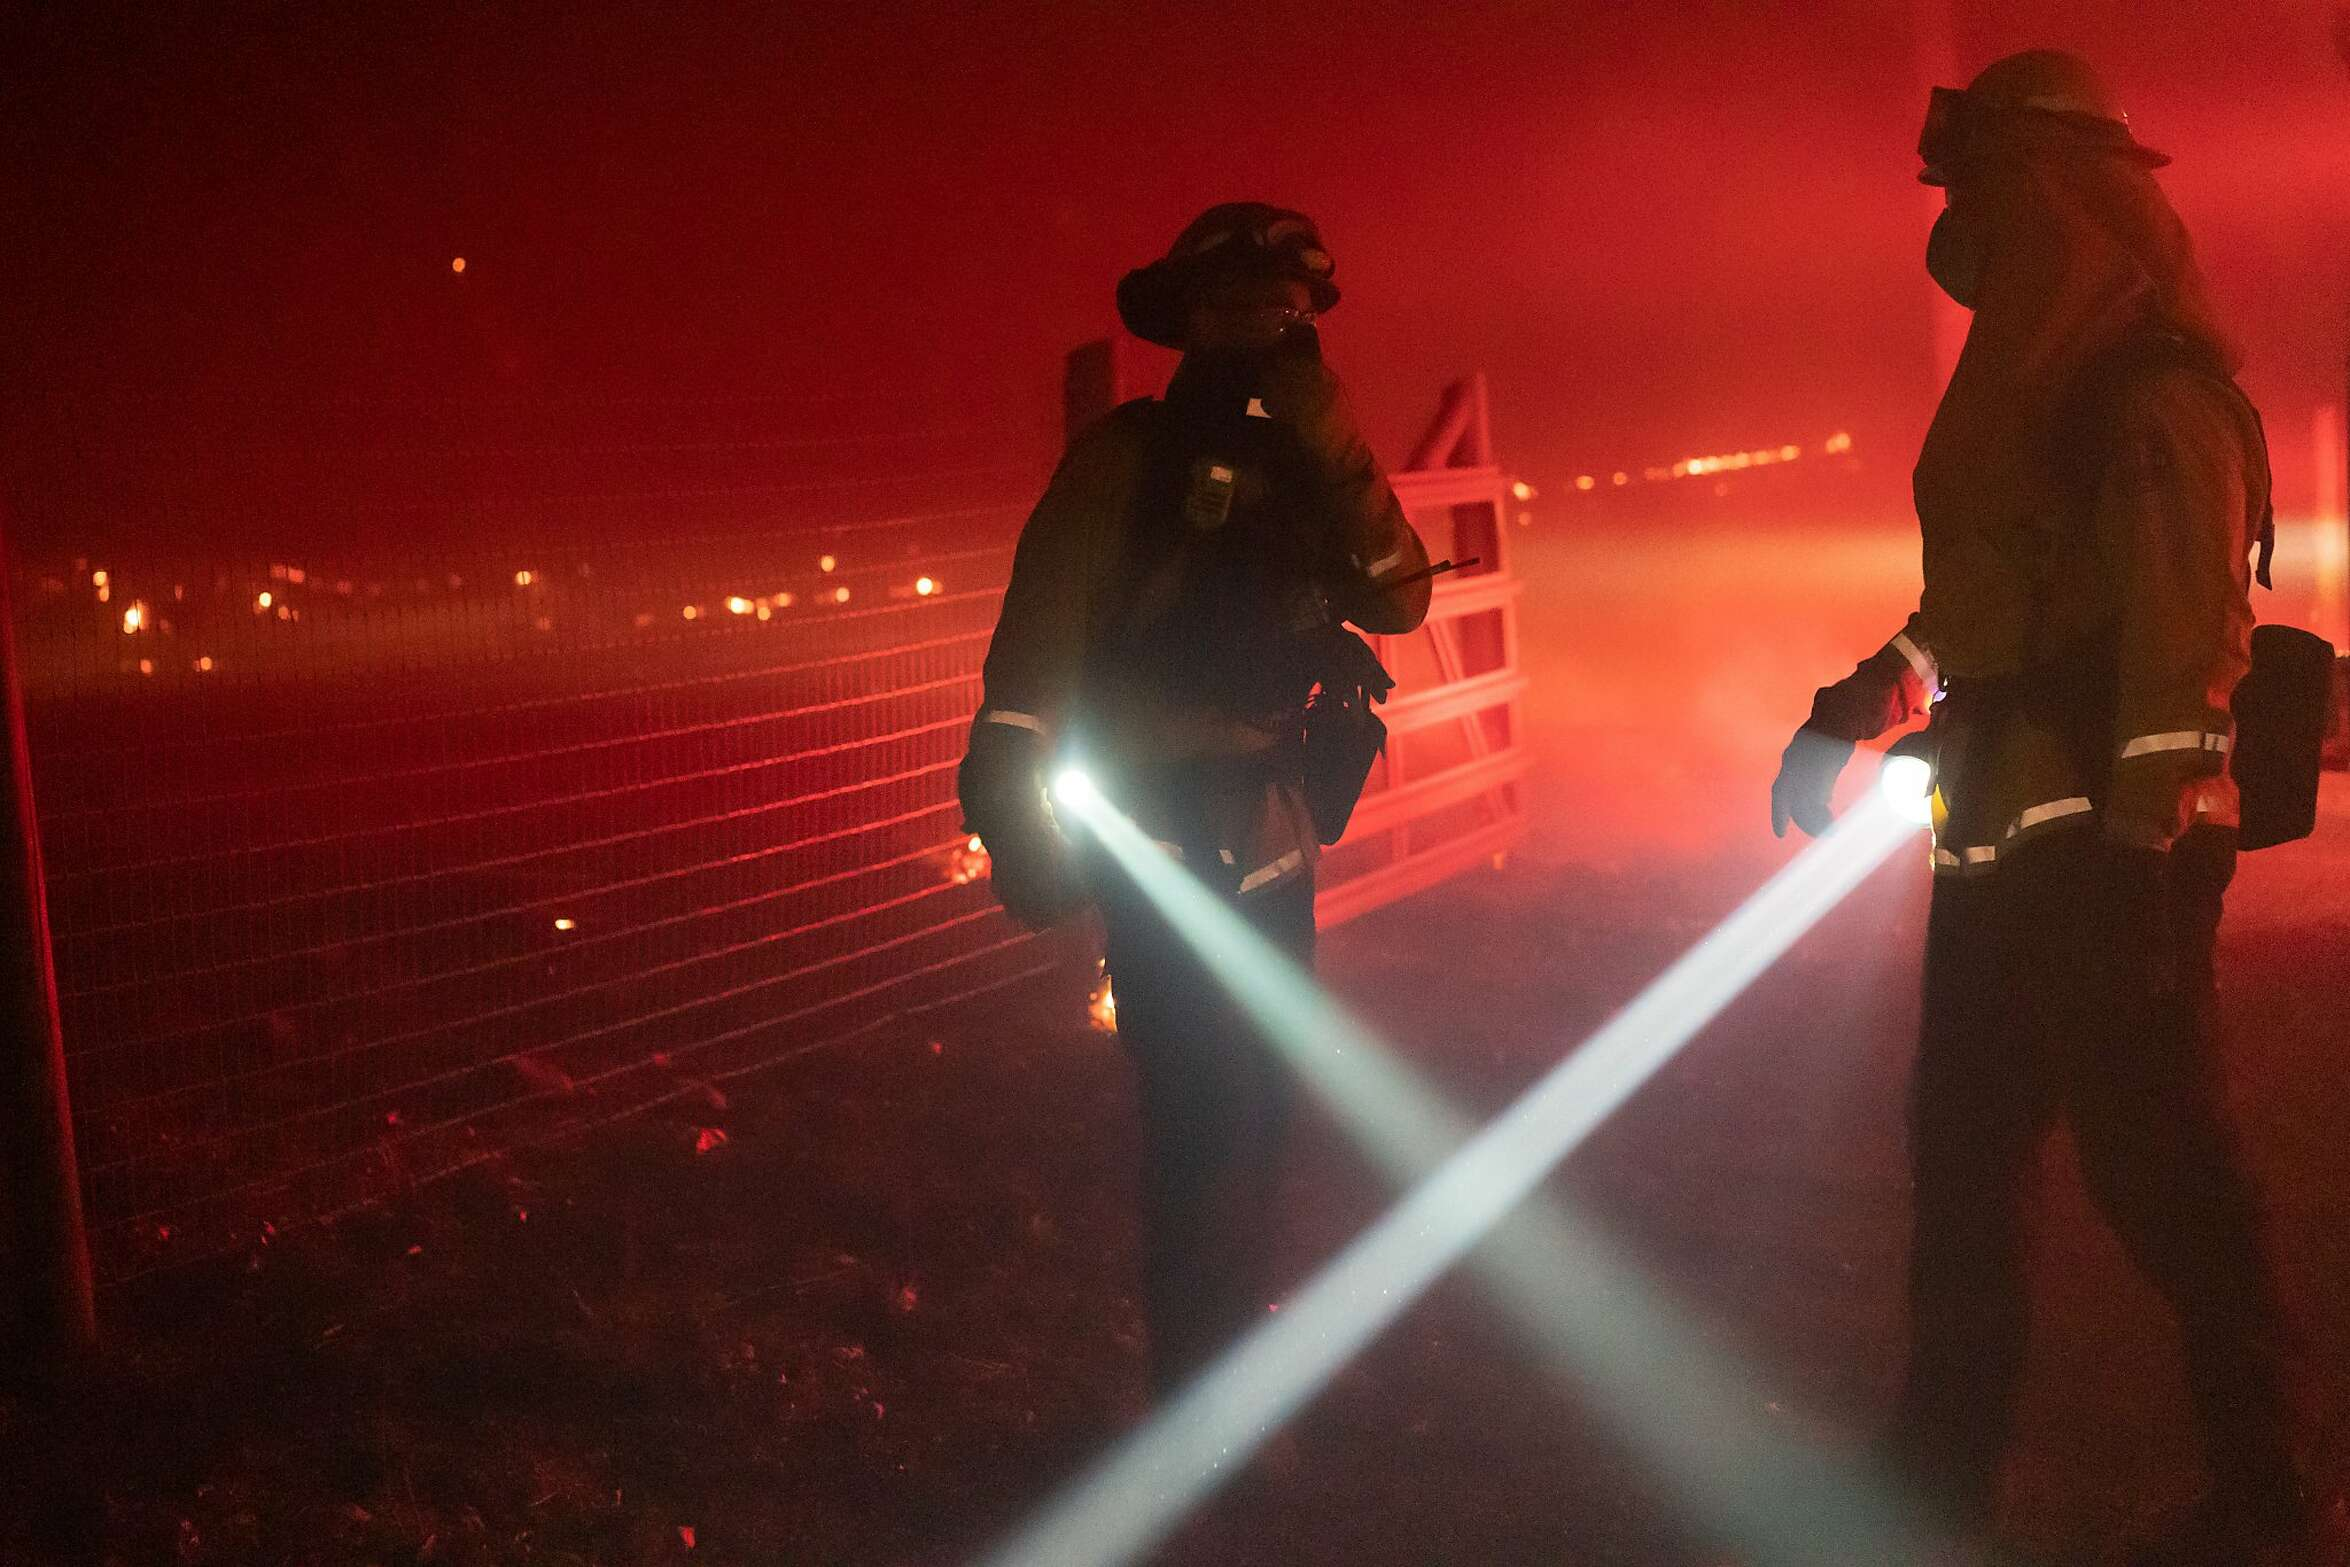 Firefighters discuss the spread of fire towards homes during the Glass on Monday, Sept. 28, 2020 in Santa Rosa, Calif.